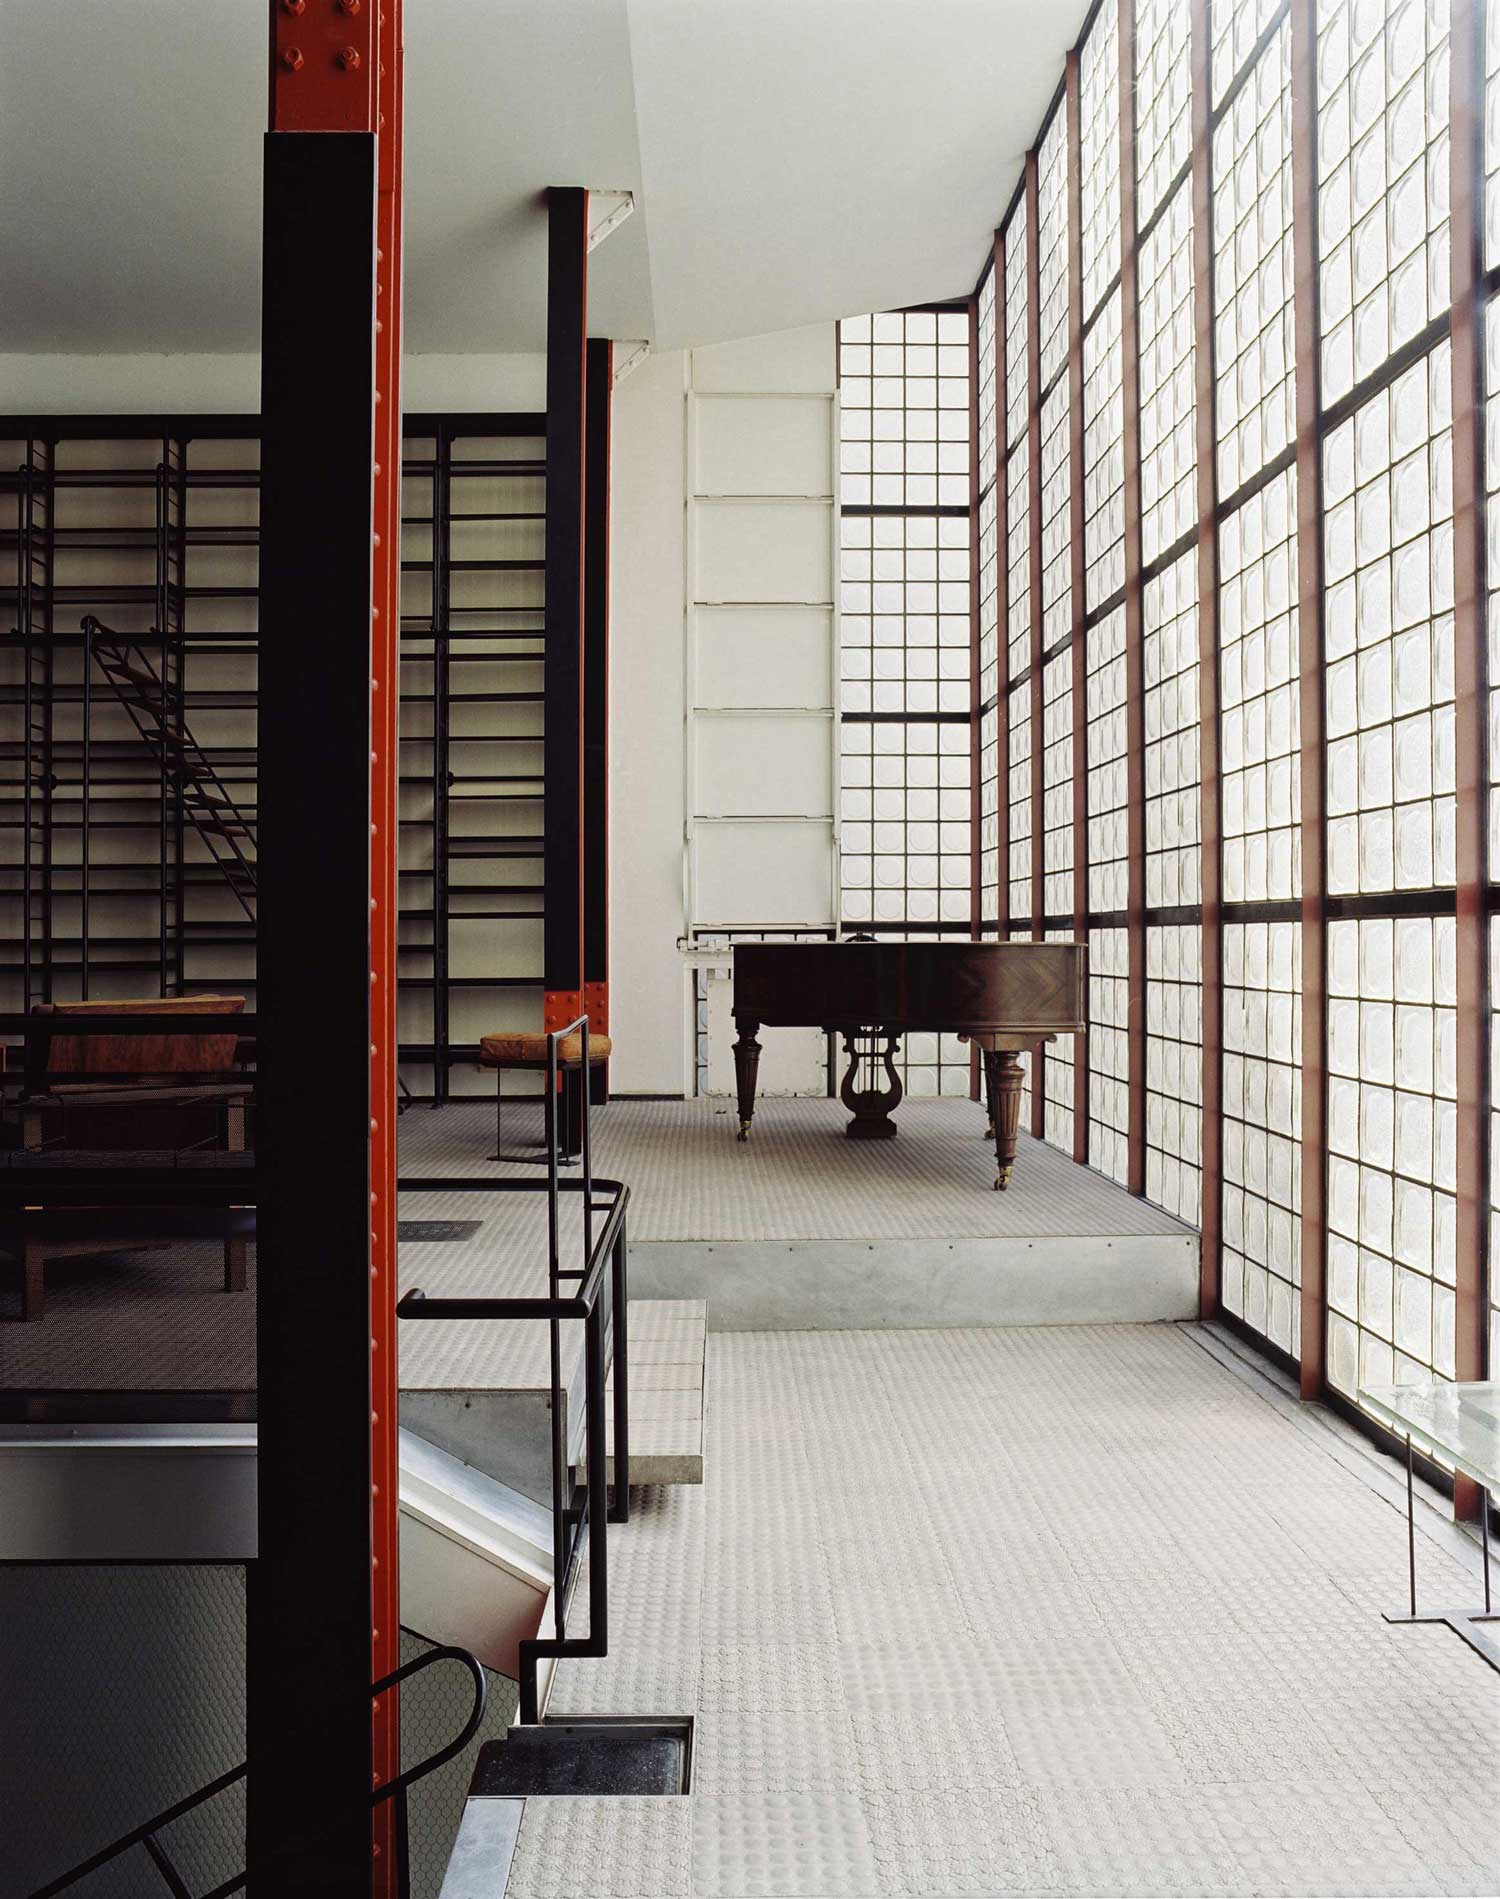 Maison de verre paris by pierre chareau bernard bijvoet for Architecture maison design